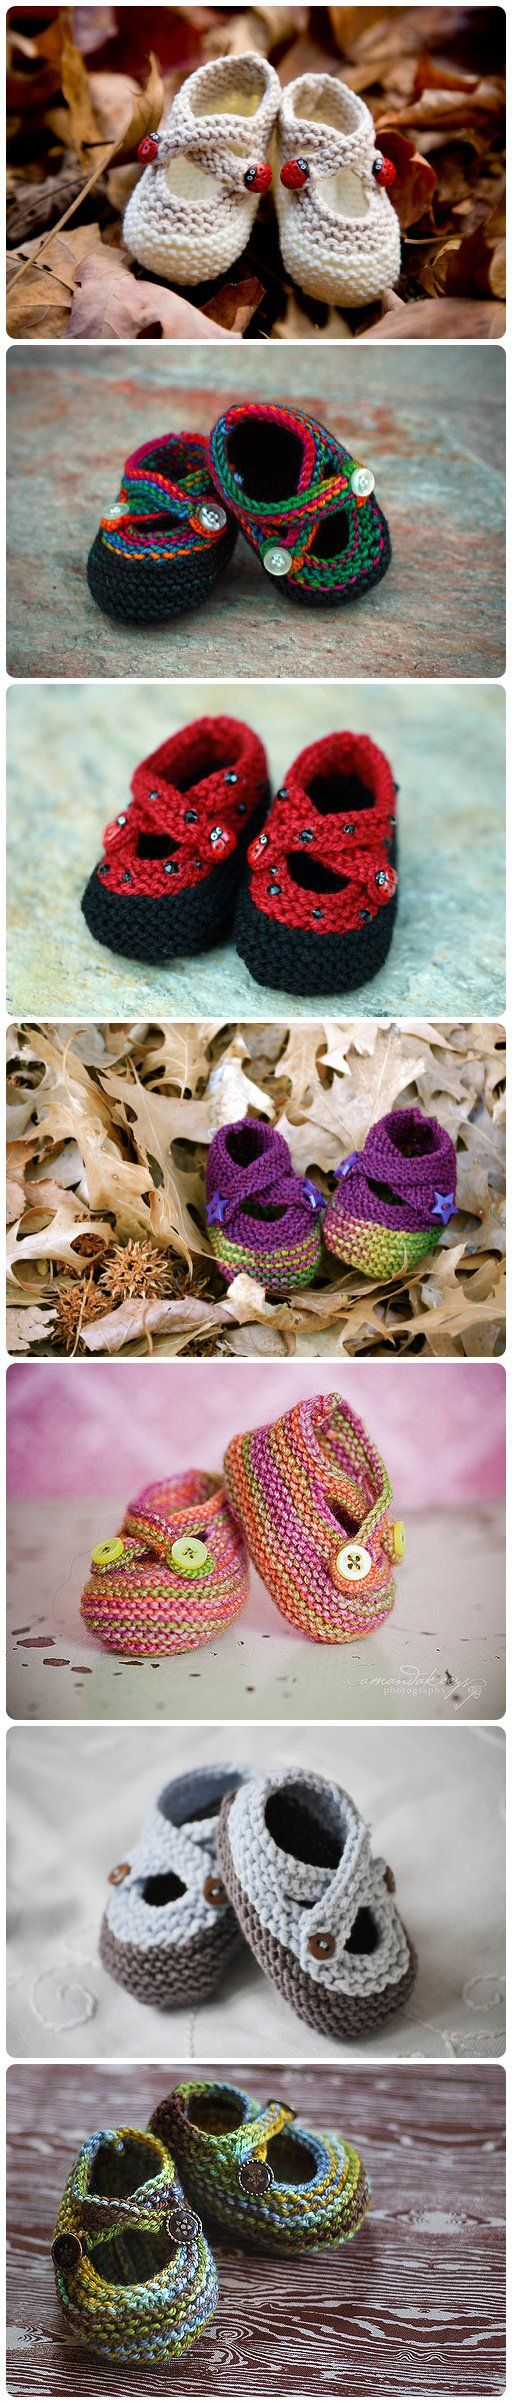 Knitted Saartje's Bootees with Free Pattern                                                                                                                                                                                 More